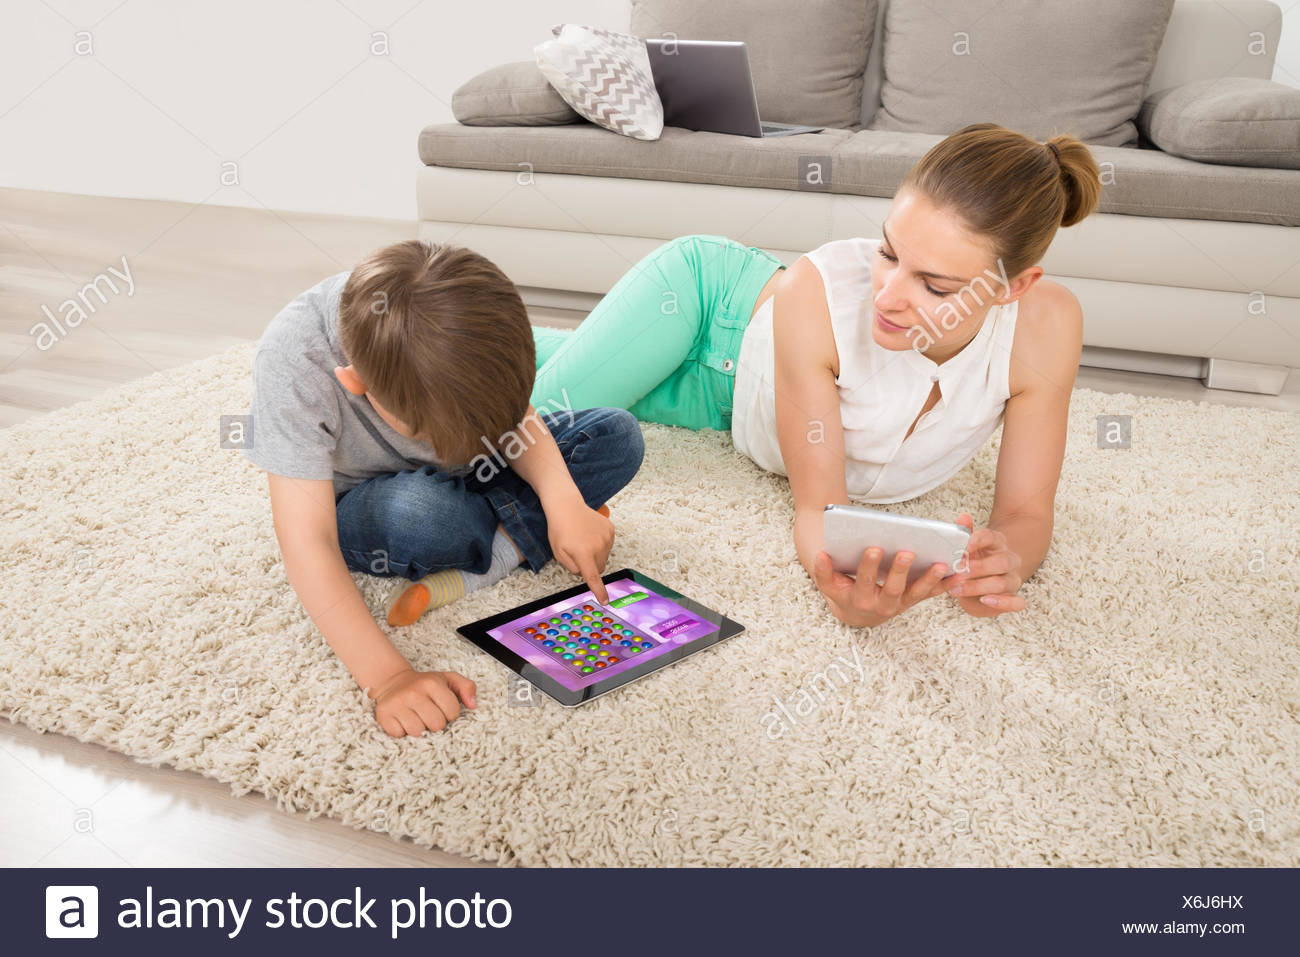 Boy Playing Game On Digital Tablet With Mother Stock Photo